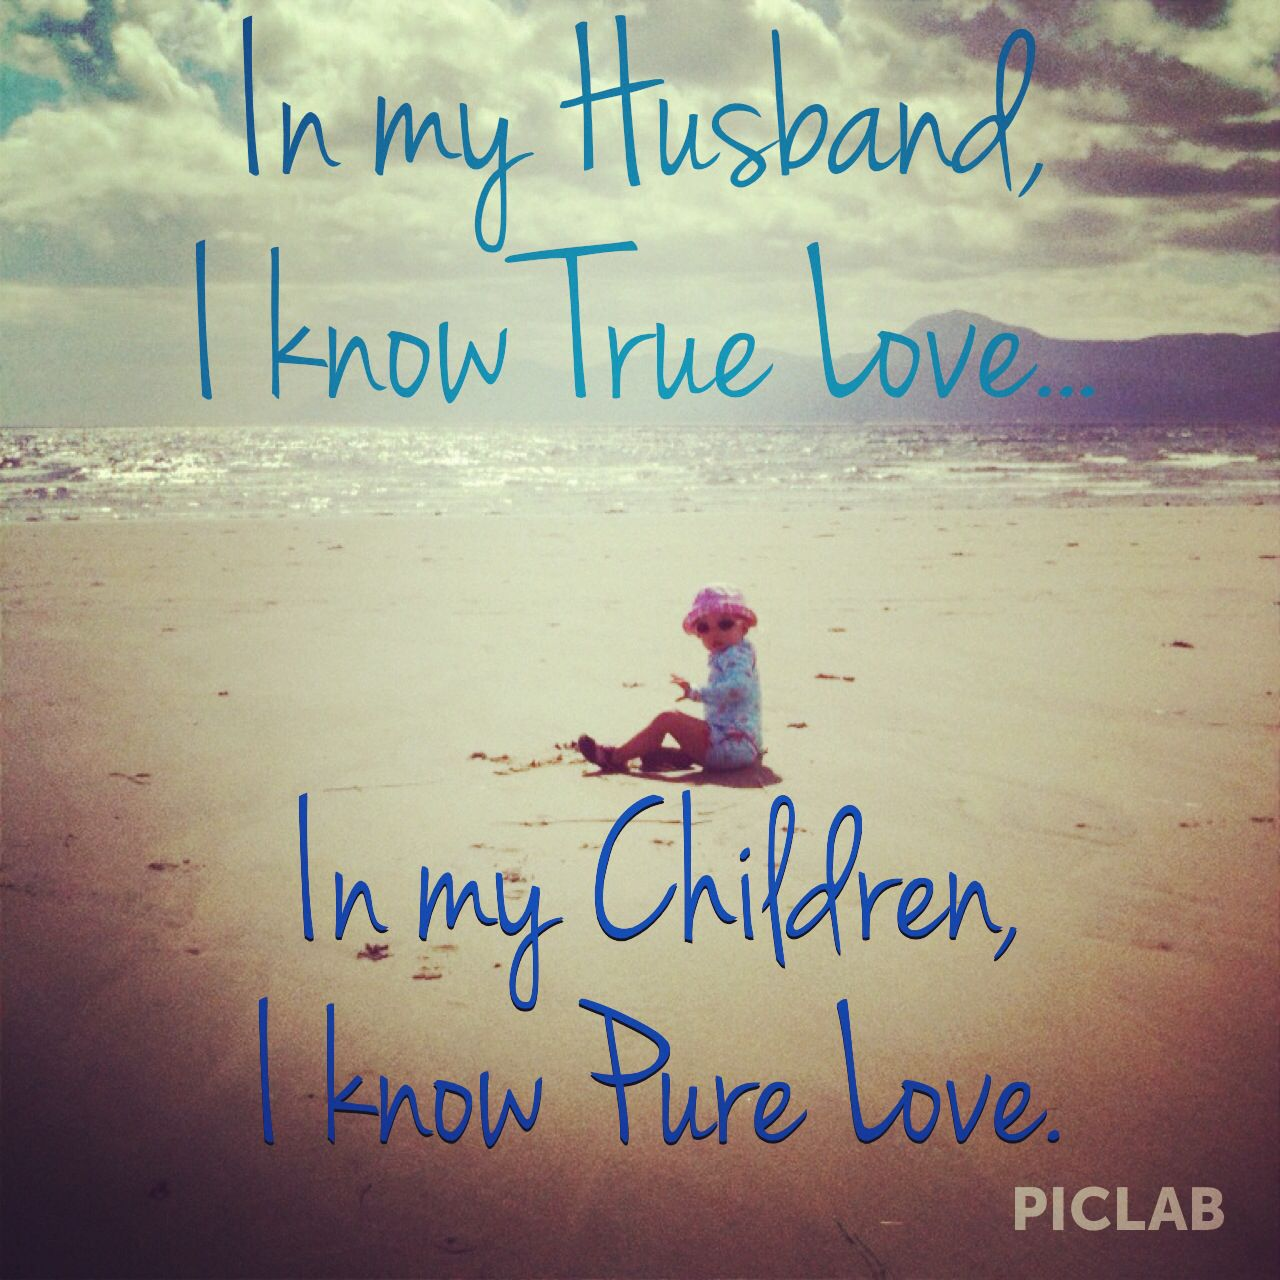 Love Husband Quotes: Love Quotes For Husband: Love Quotes For Husband And Child